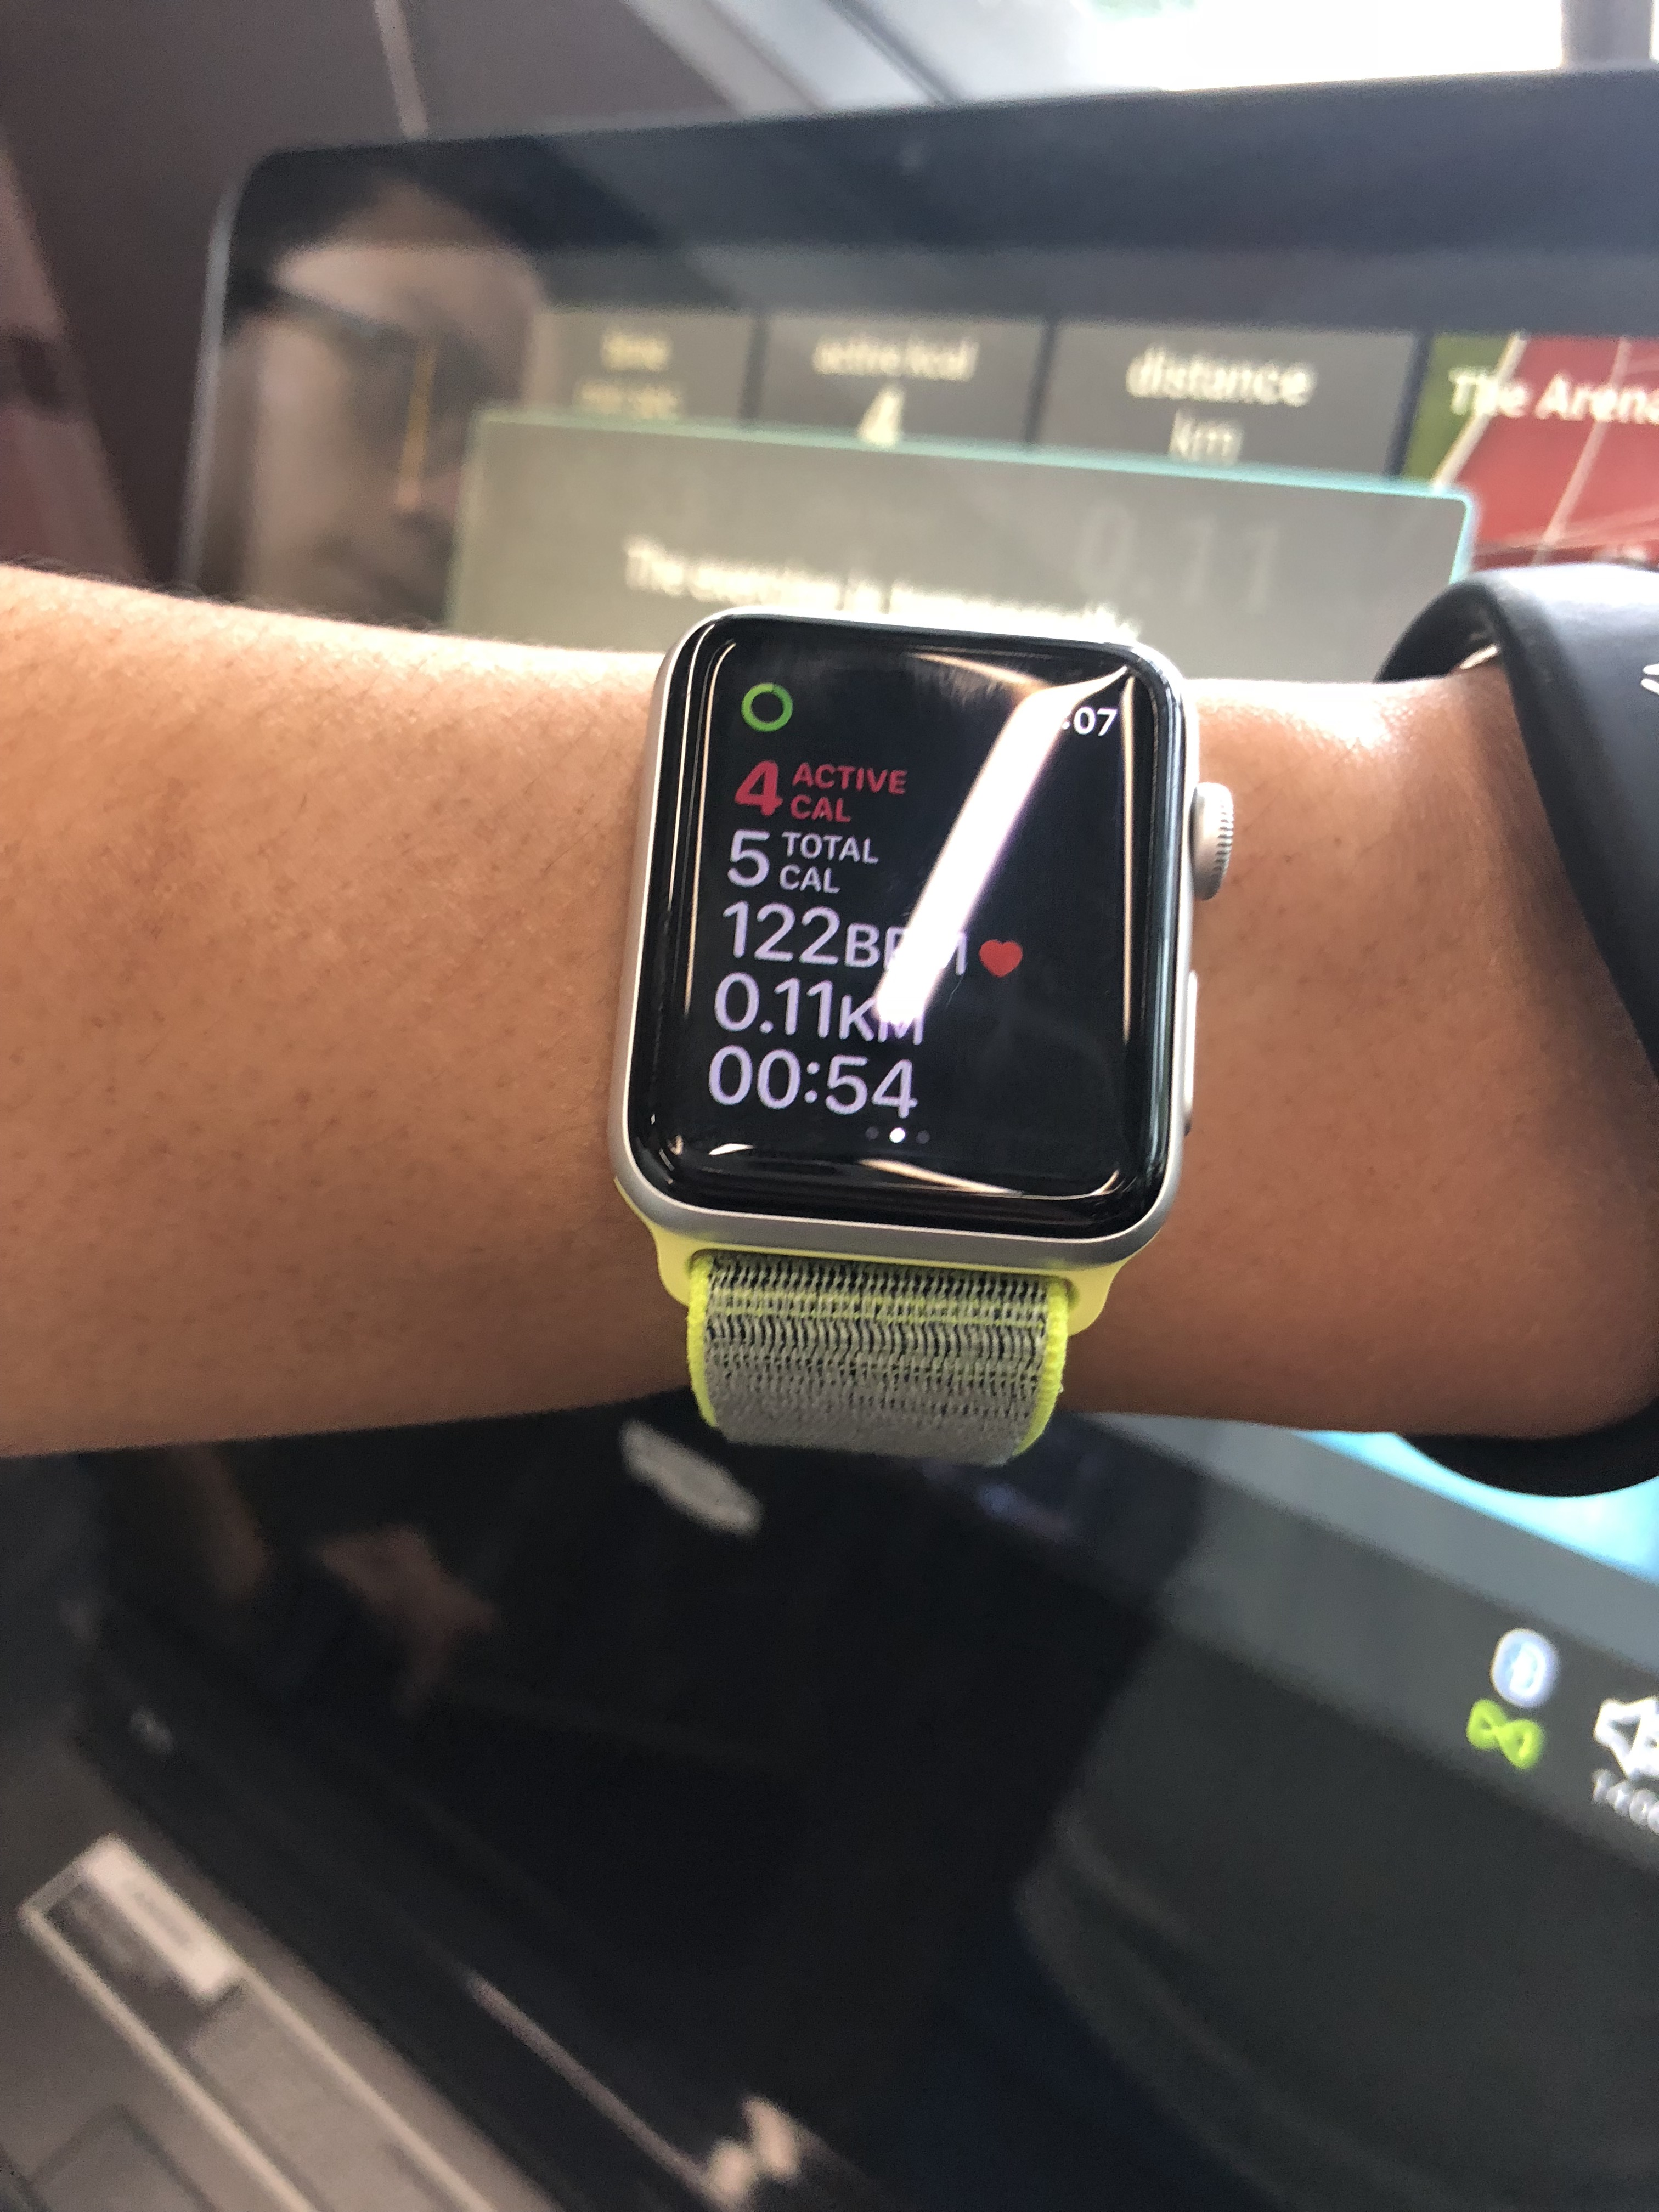 Apple GymKit Arrives in Singapore at Virgin Active